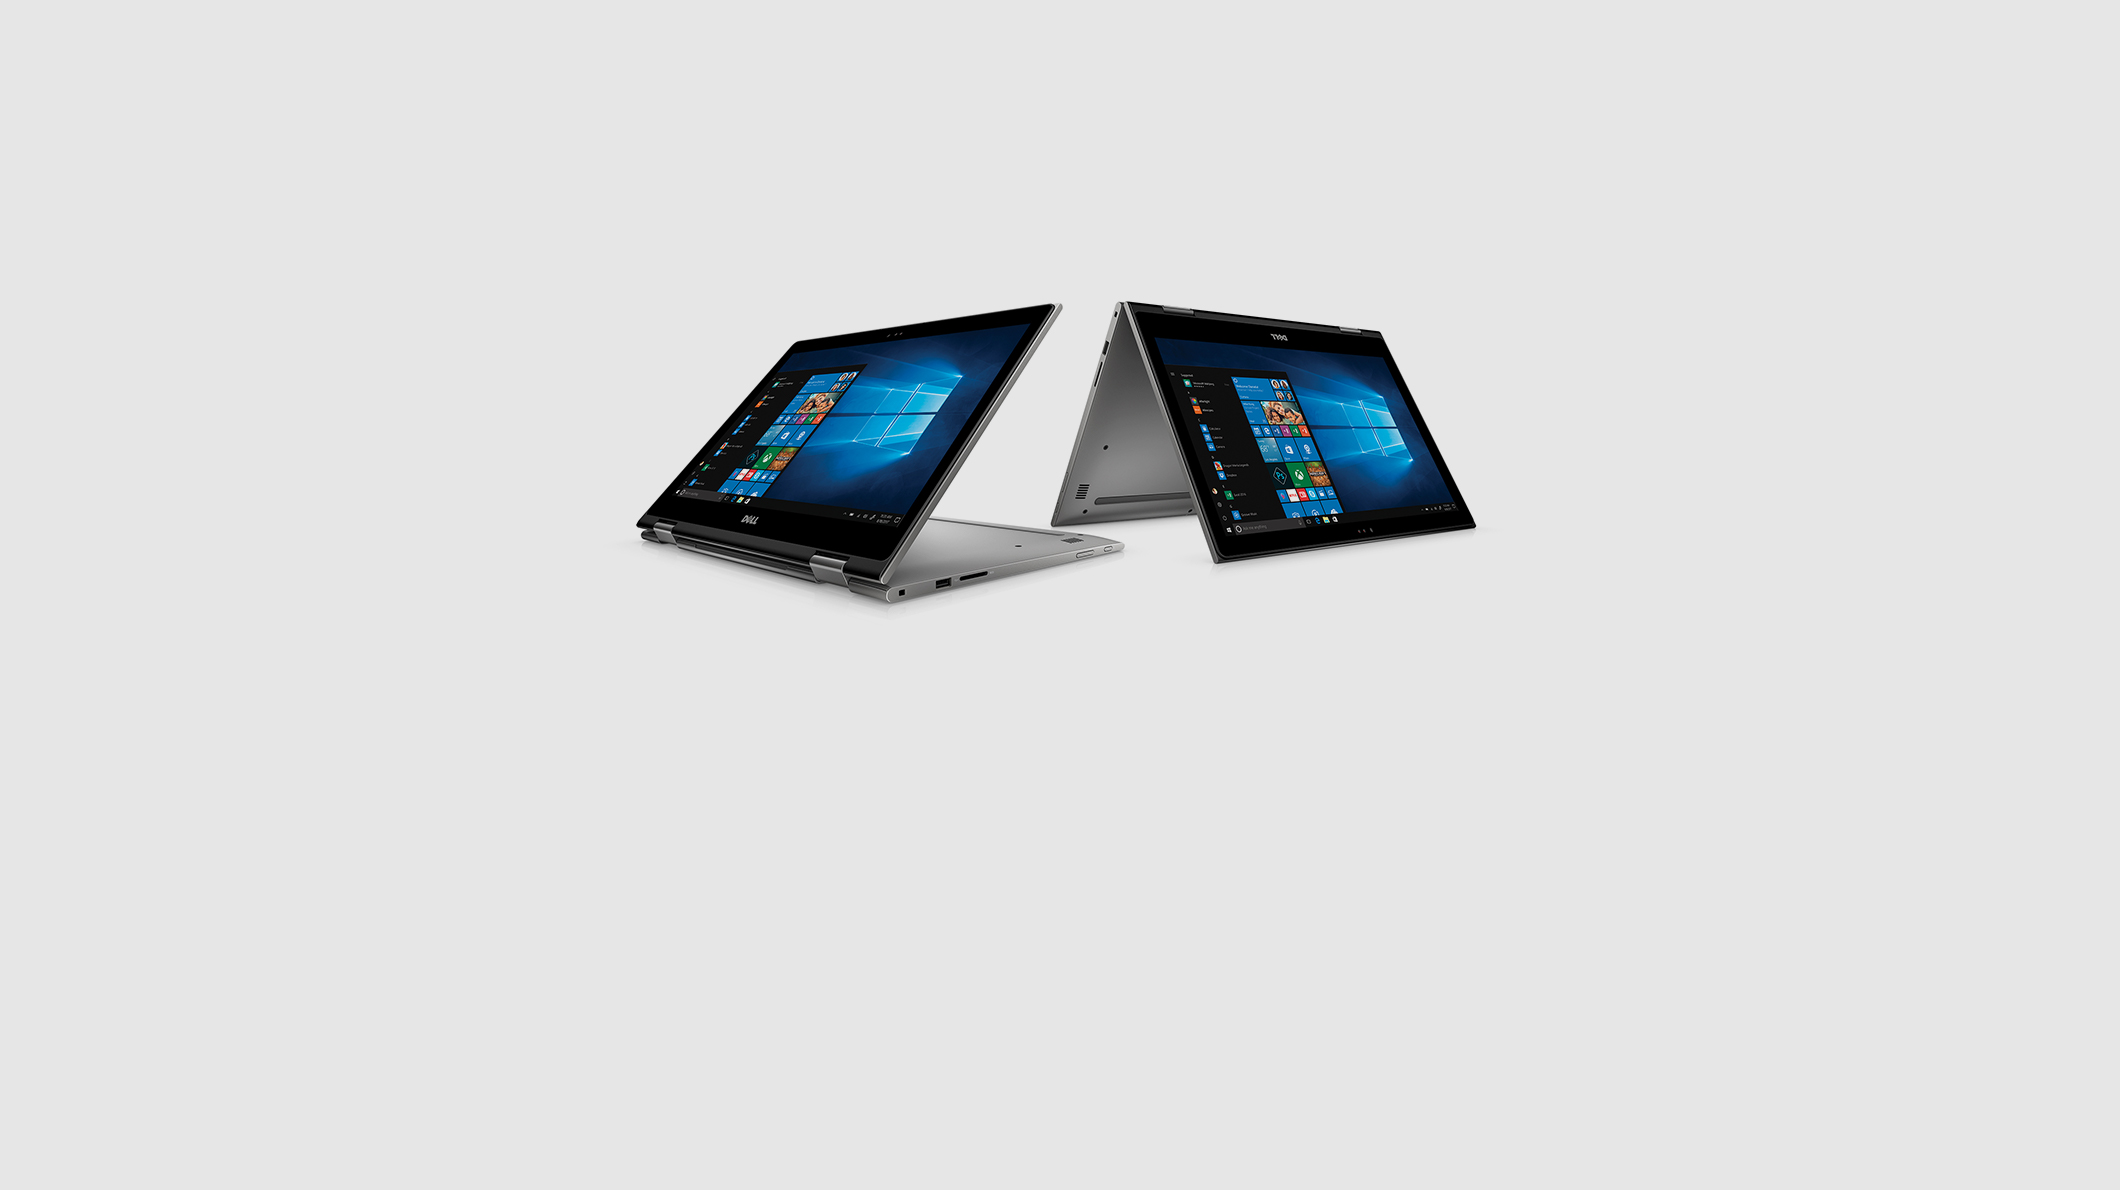 Two Dell XPS 15 2-in-1 laptop PCs displaying Windows 10